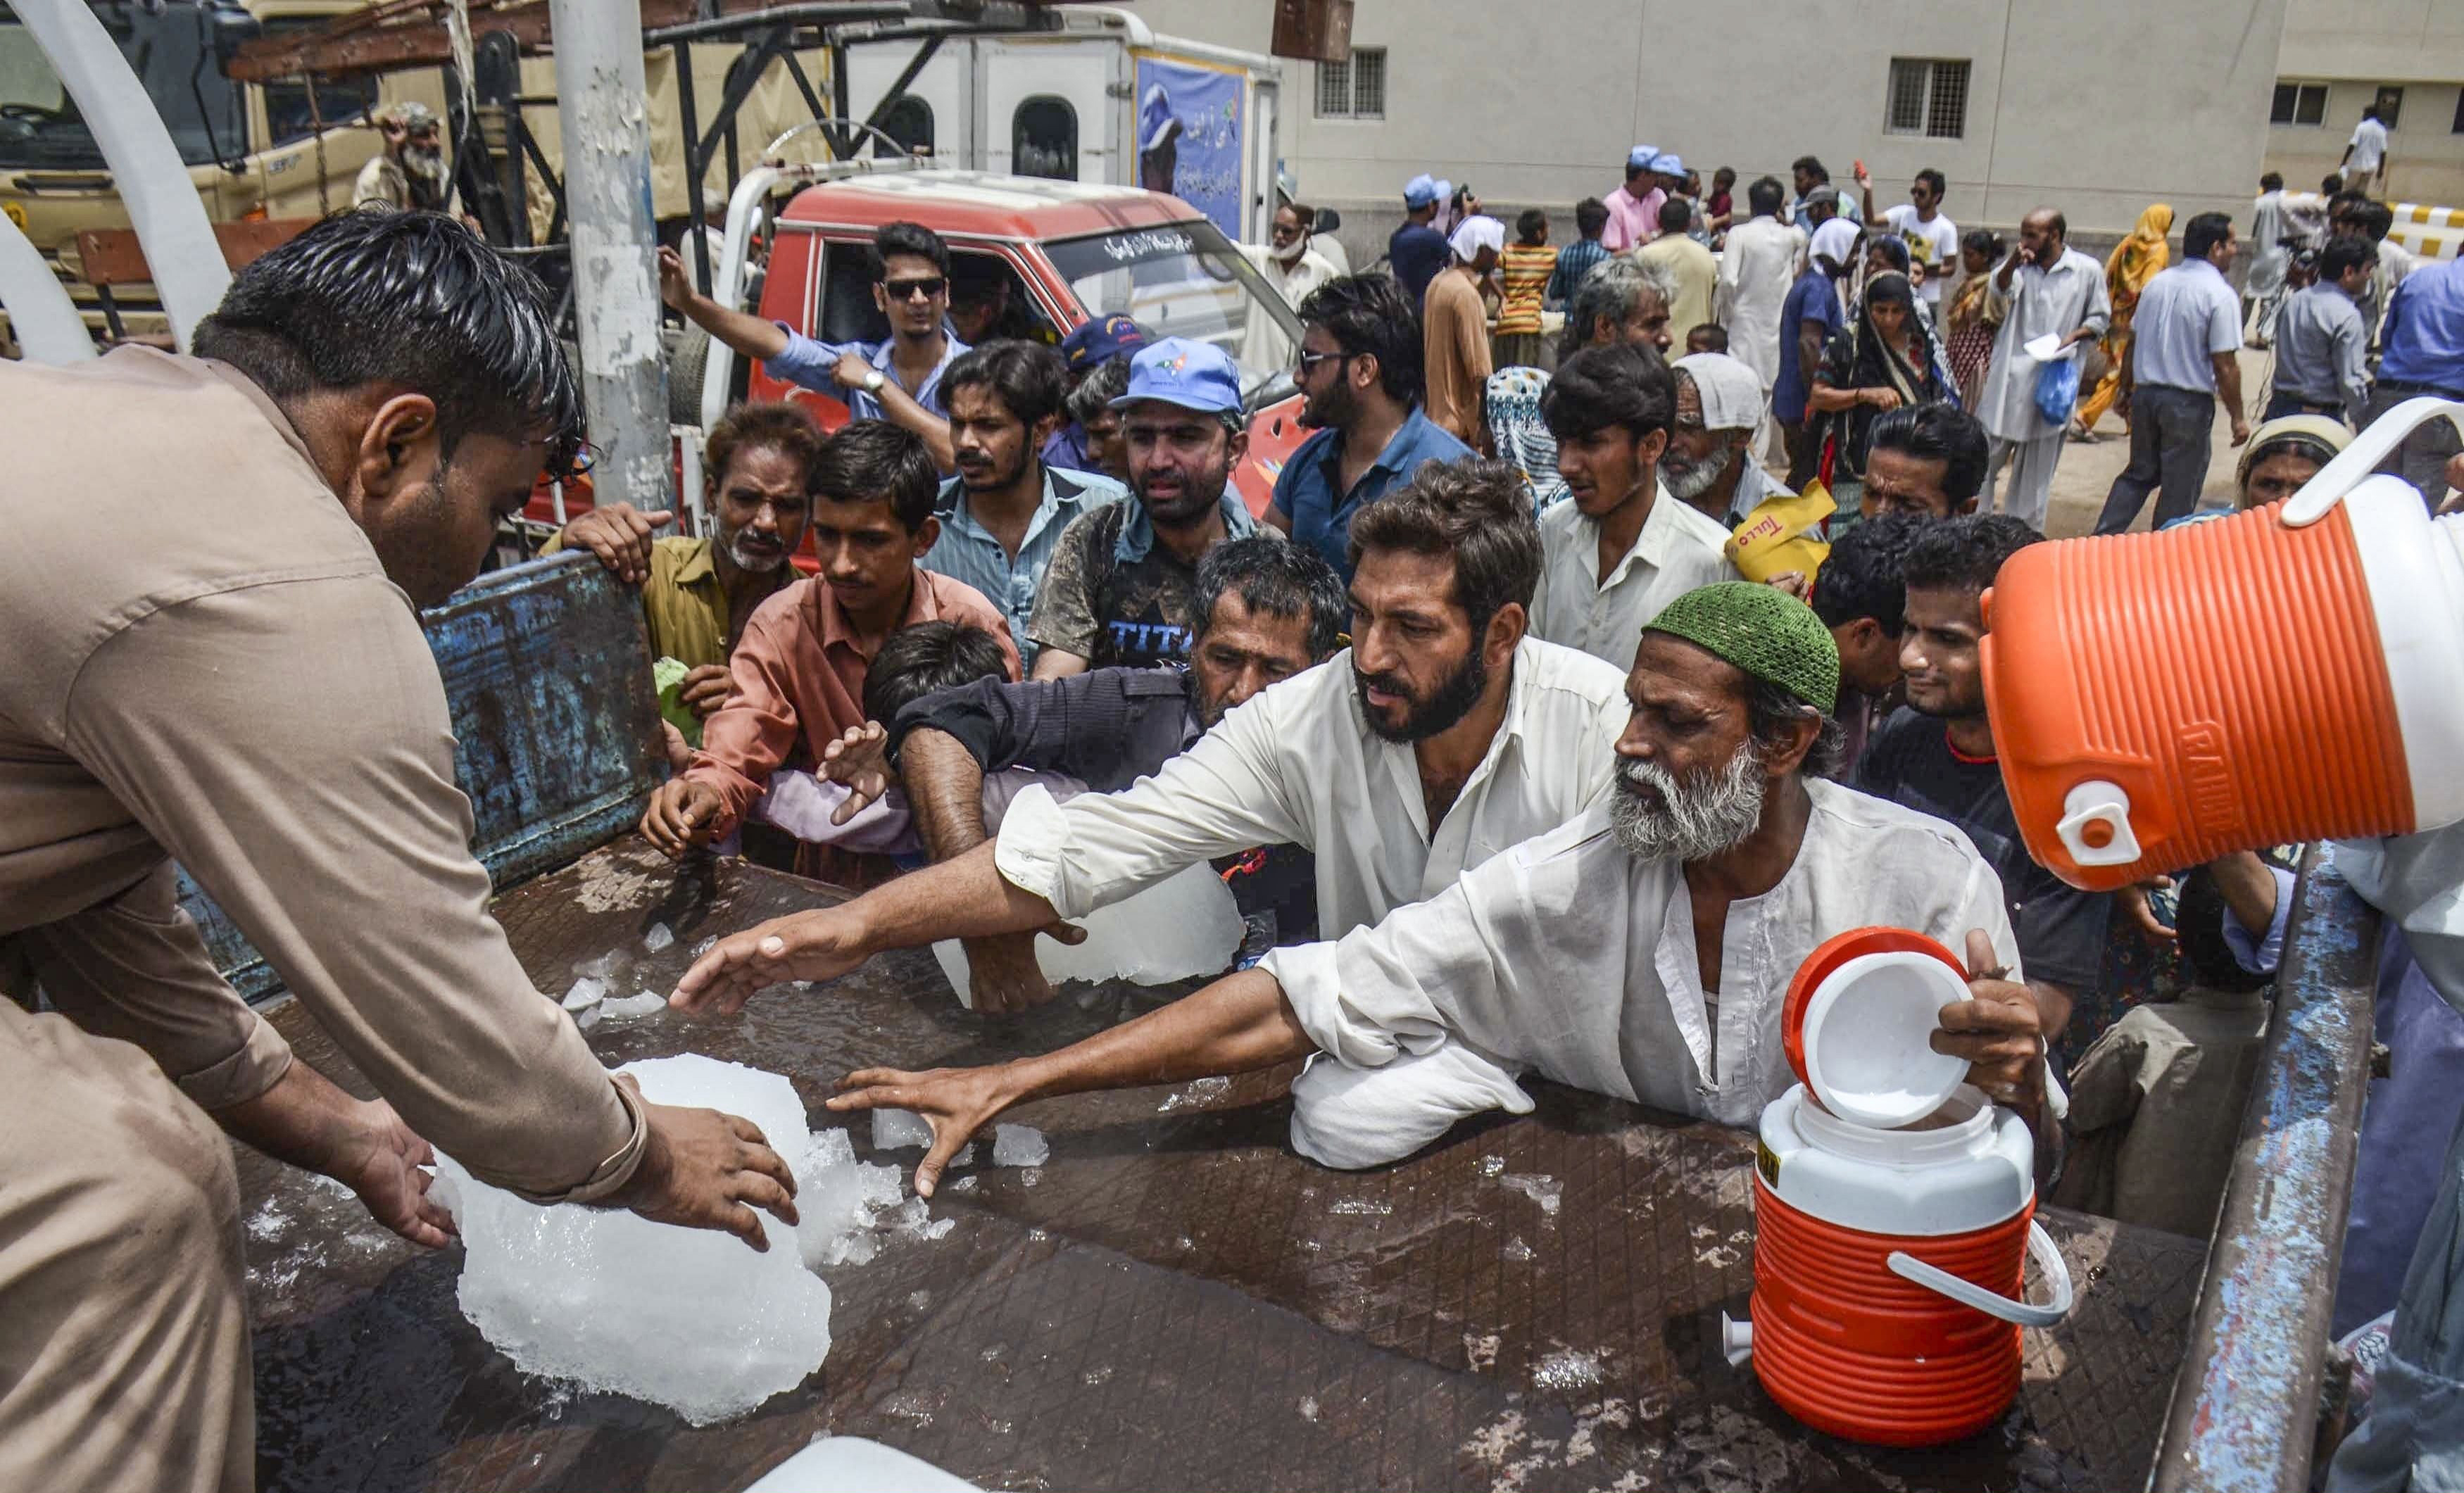 Pakistanis receive ice outside a hospital during a heat wave in Karachi, Pakistan, on June 24, 2015.